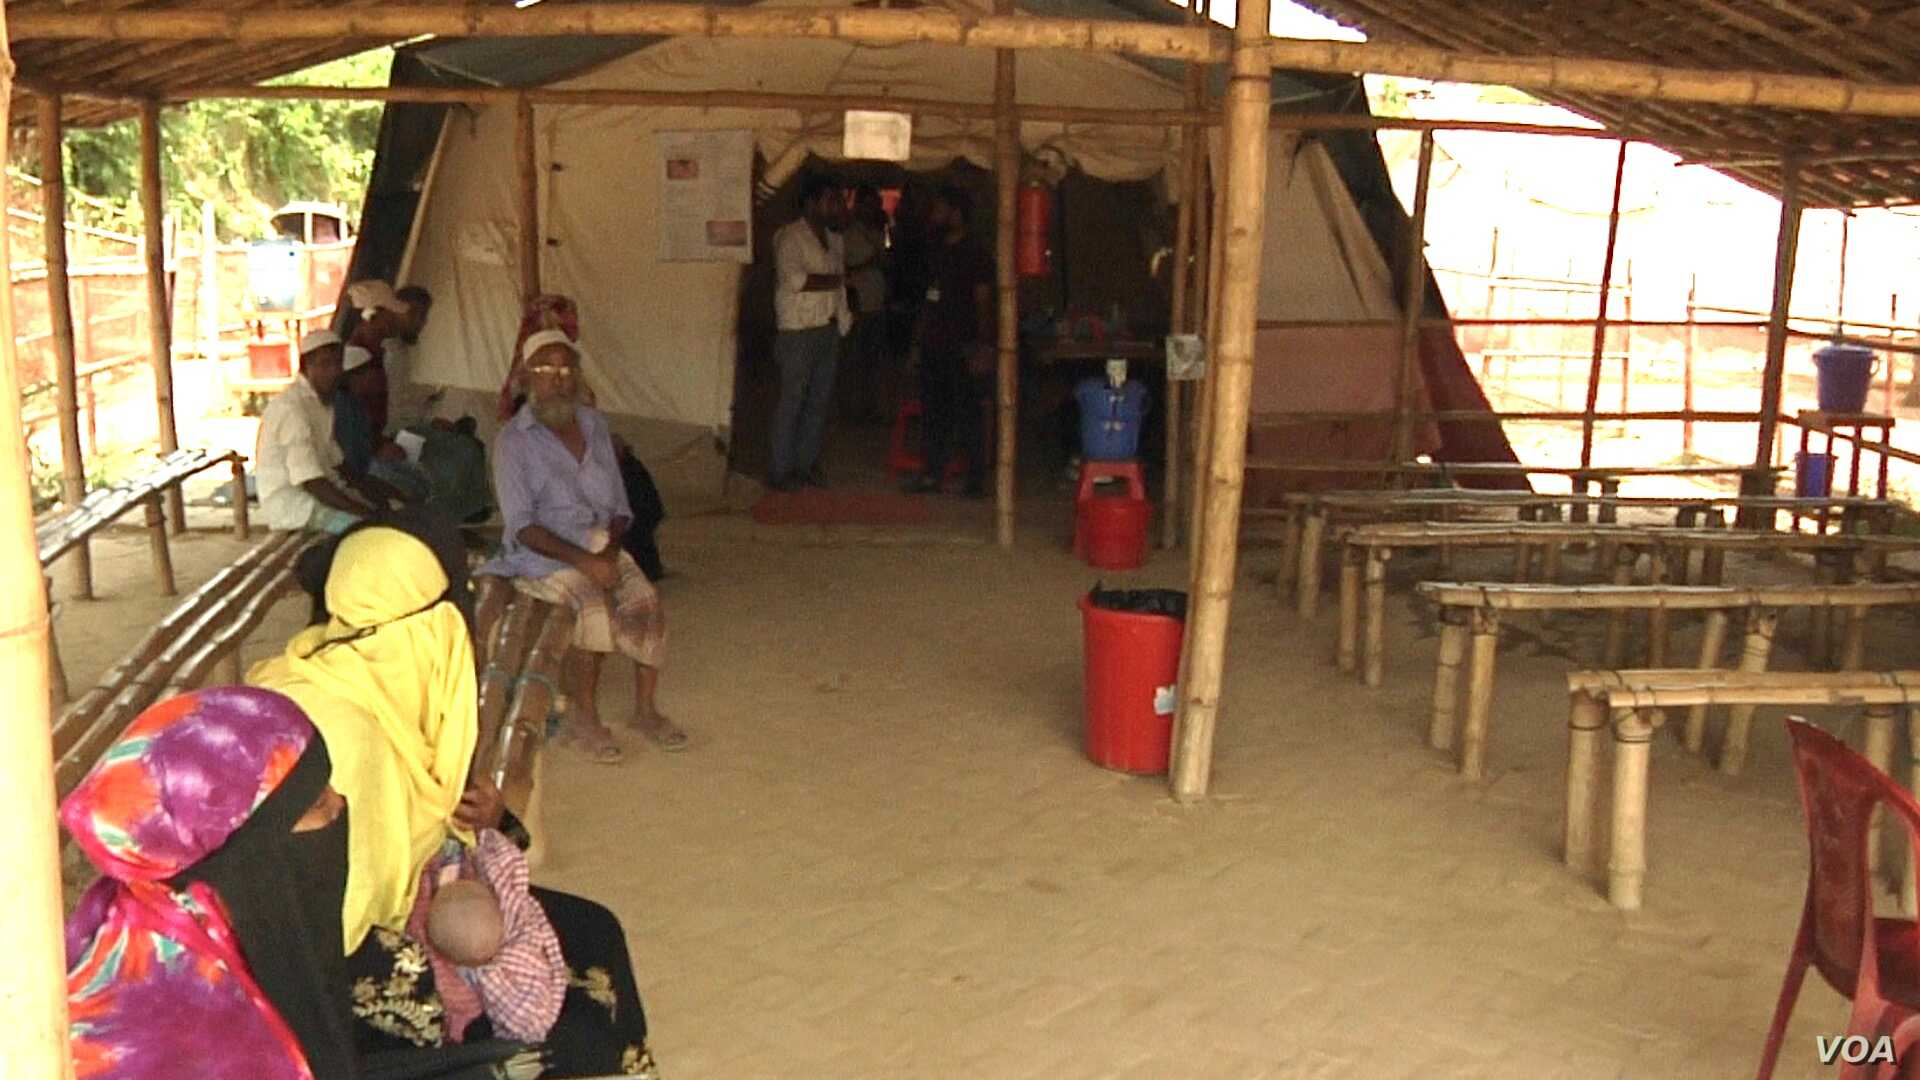 The waiting area at the outpatient clinic of a Doctors Without Borders hospital in a Rohingya refugee camp.